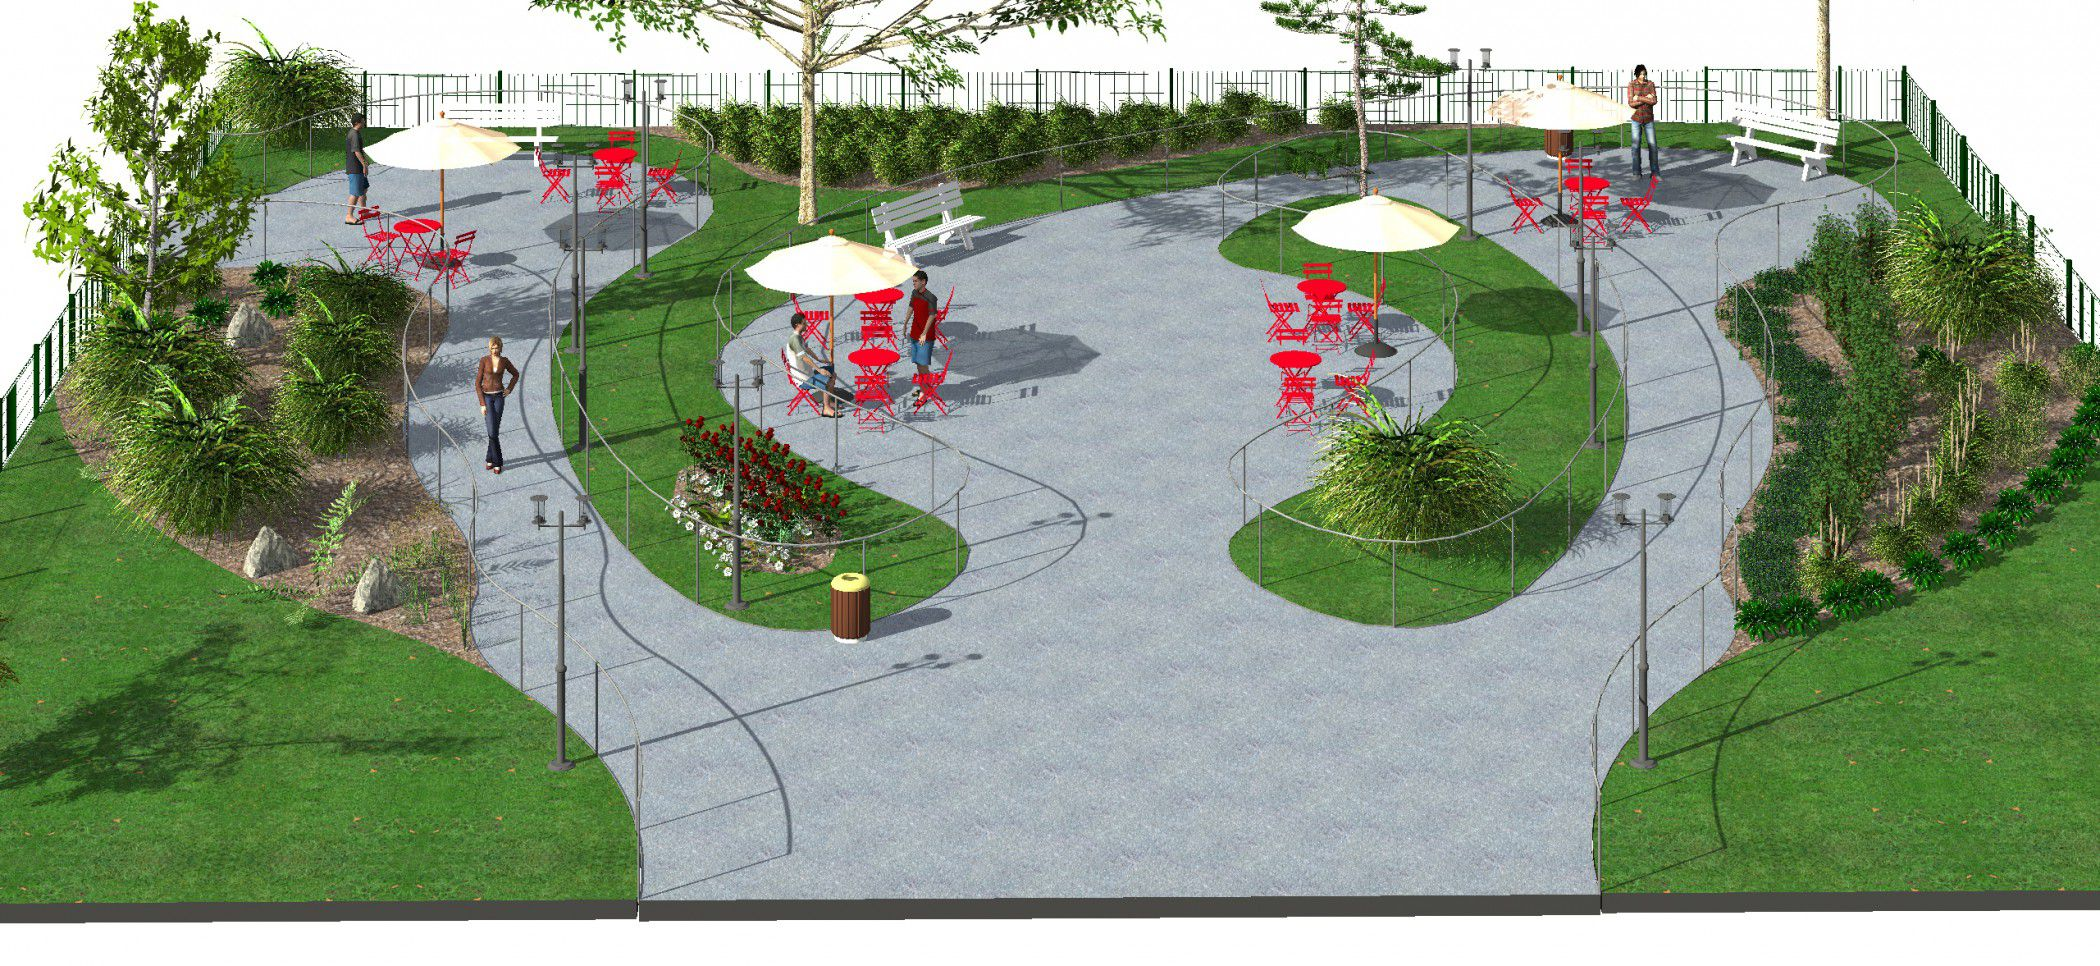 Etude d am nagement d un jardin public 3d architecture for Conception de jardin 3d